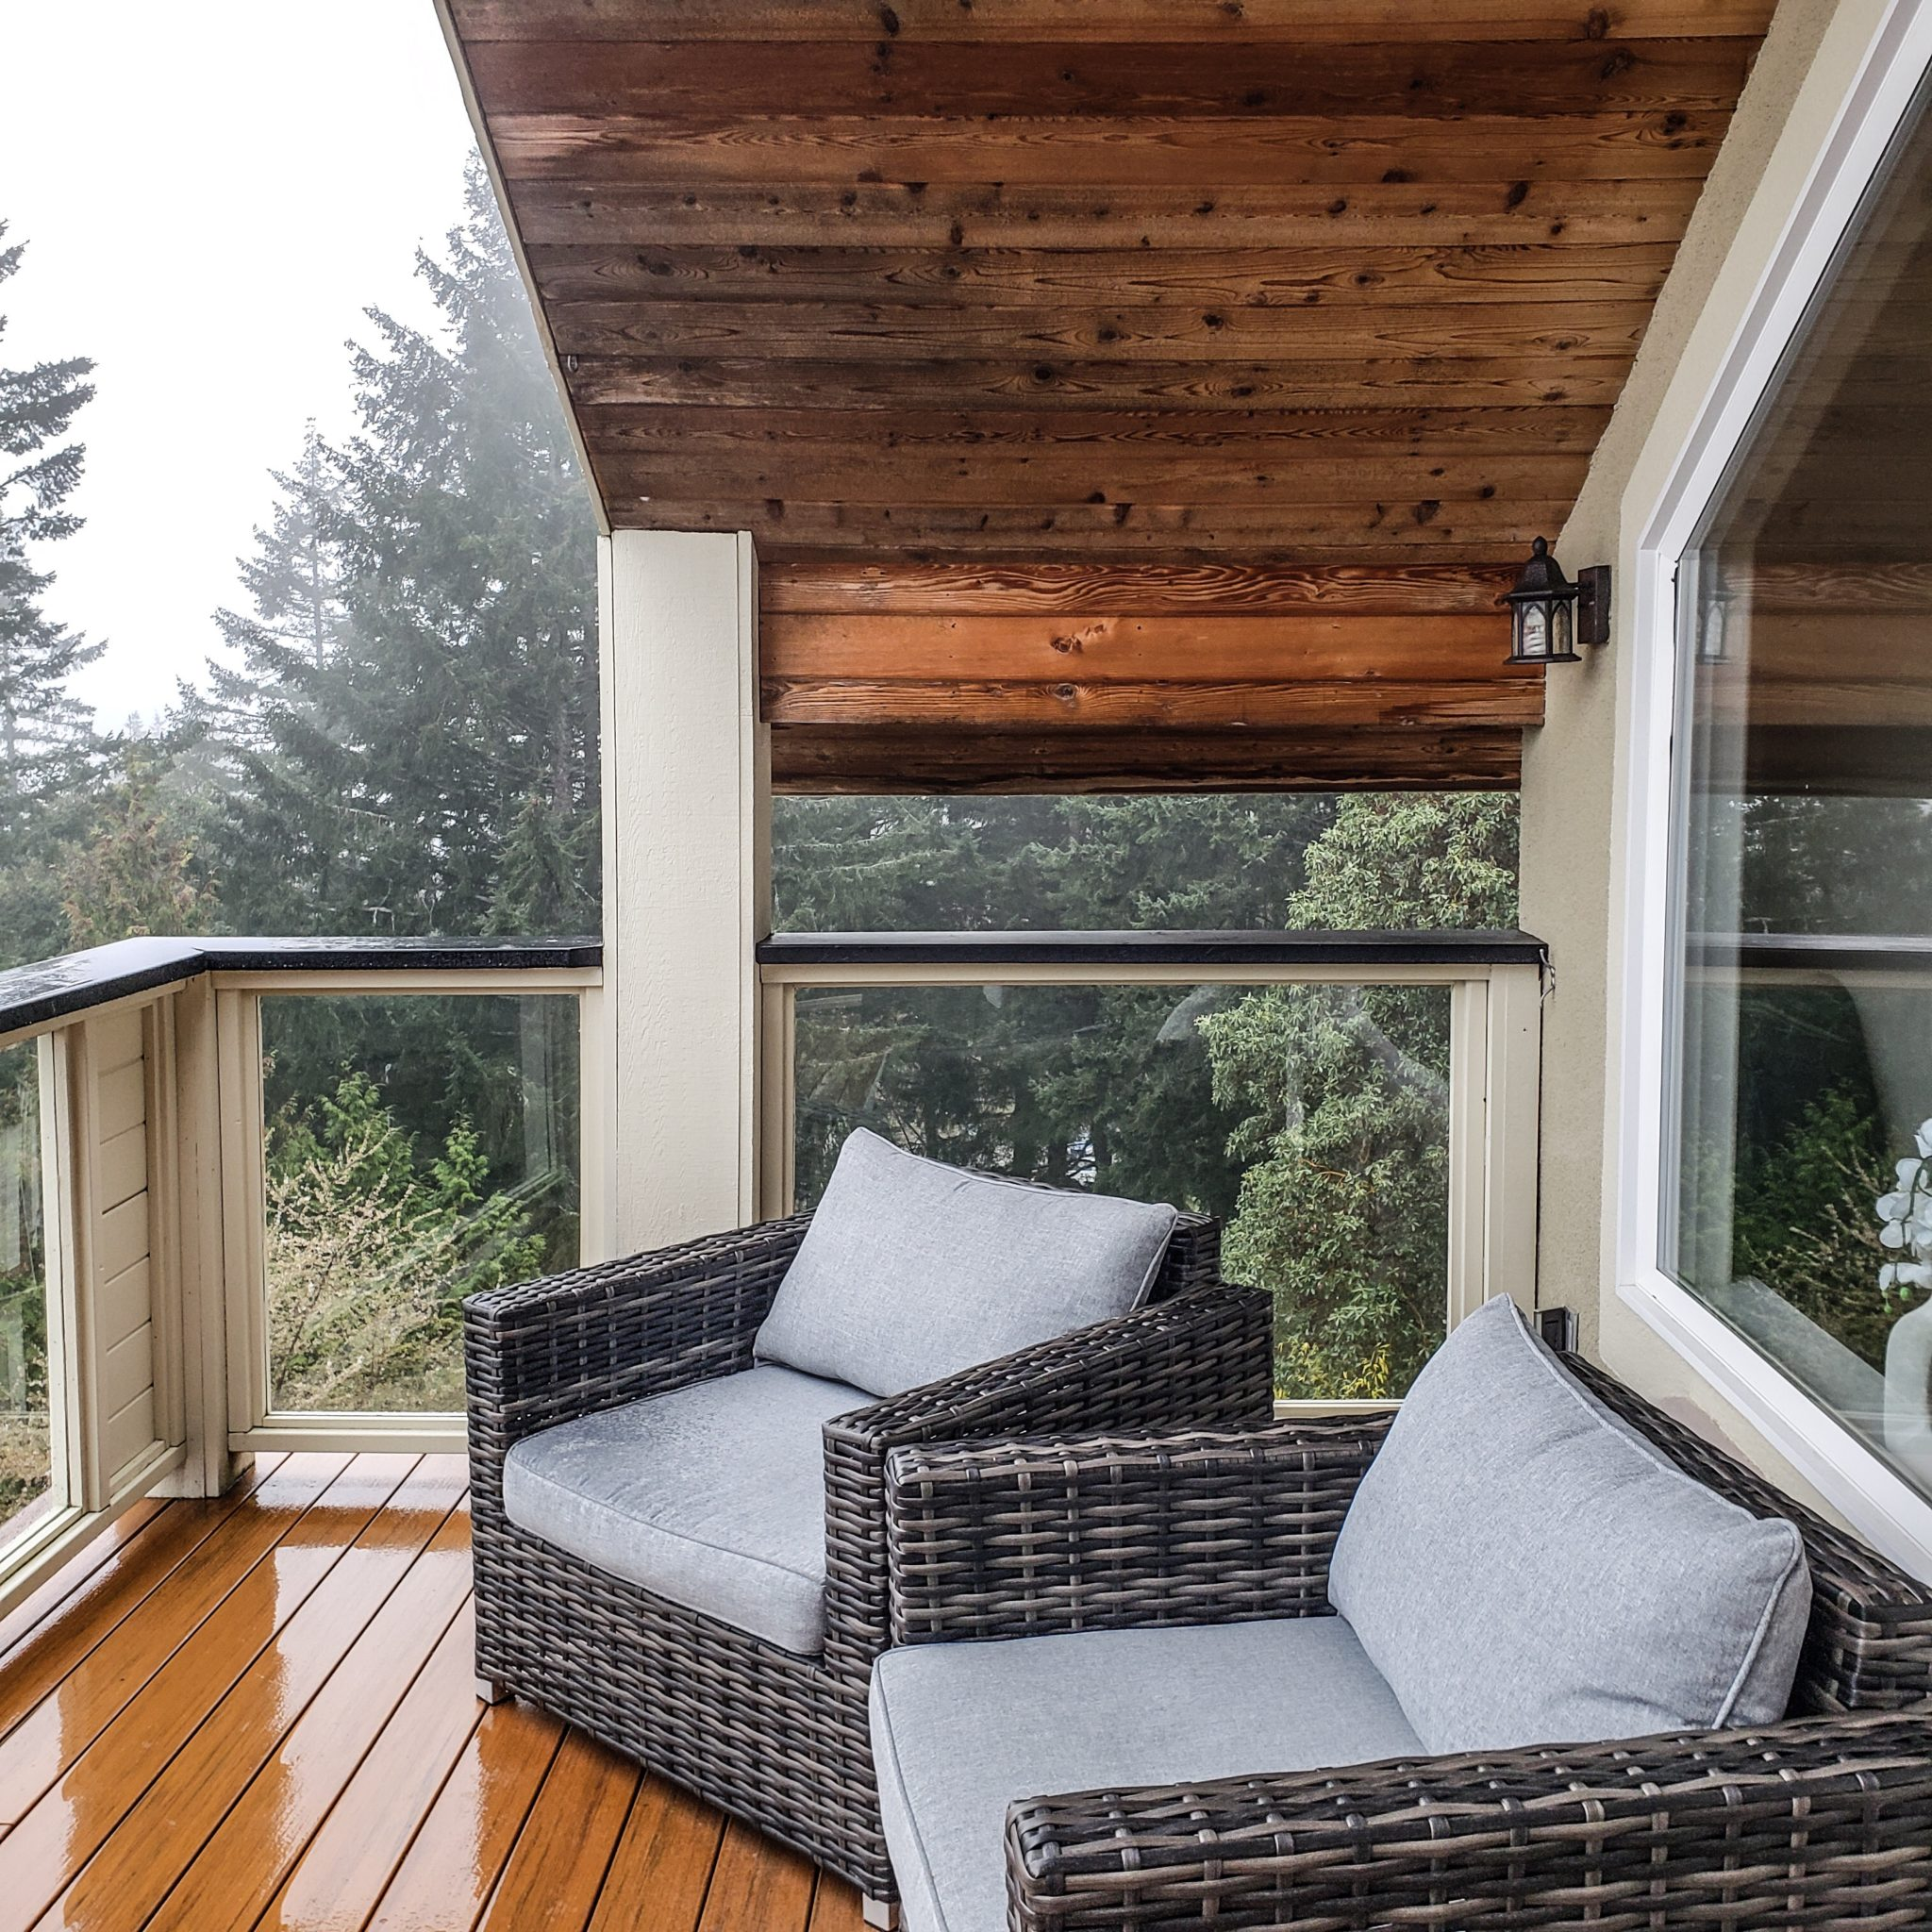 BC - Canada - Vancouver Island - Villa Eyrie - Cowichan Tourism - British Columbia